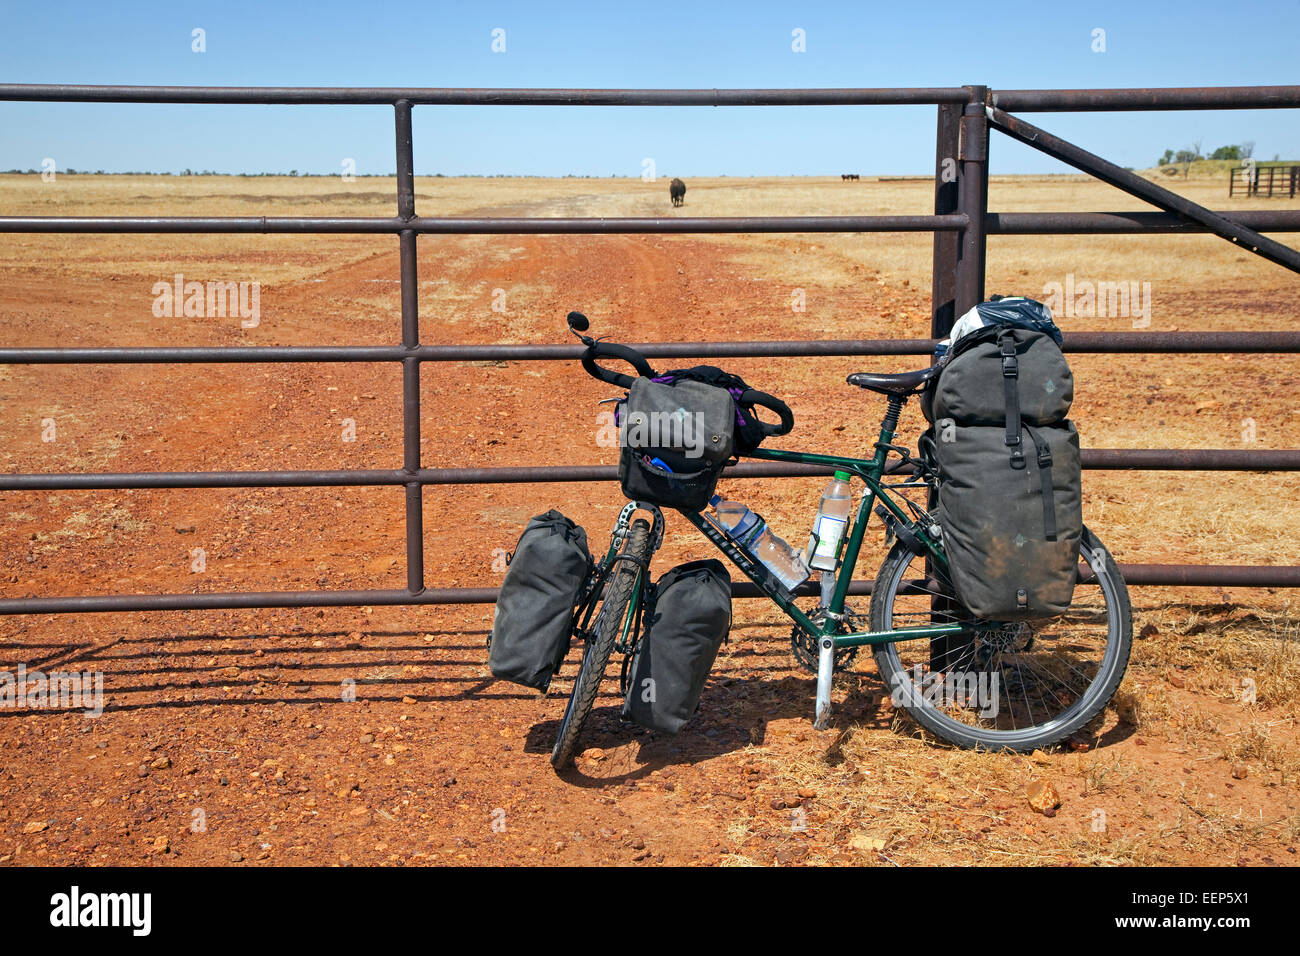 Touring bicycle equipped with panniers and handlebar bag in the  Australian outback, Northern Territory, Australia - Stock Image